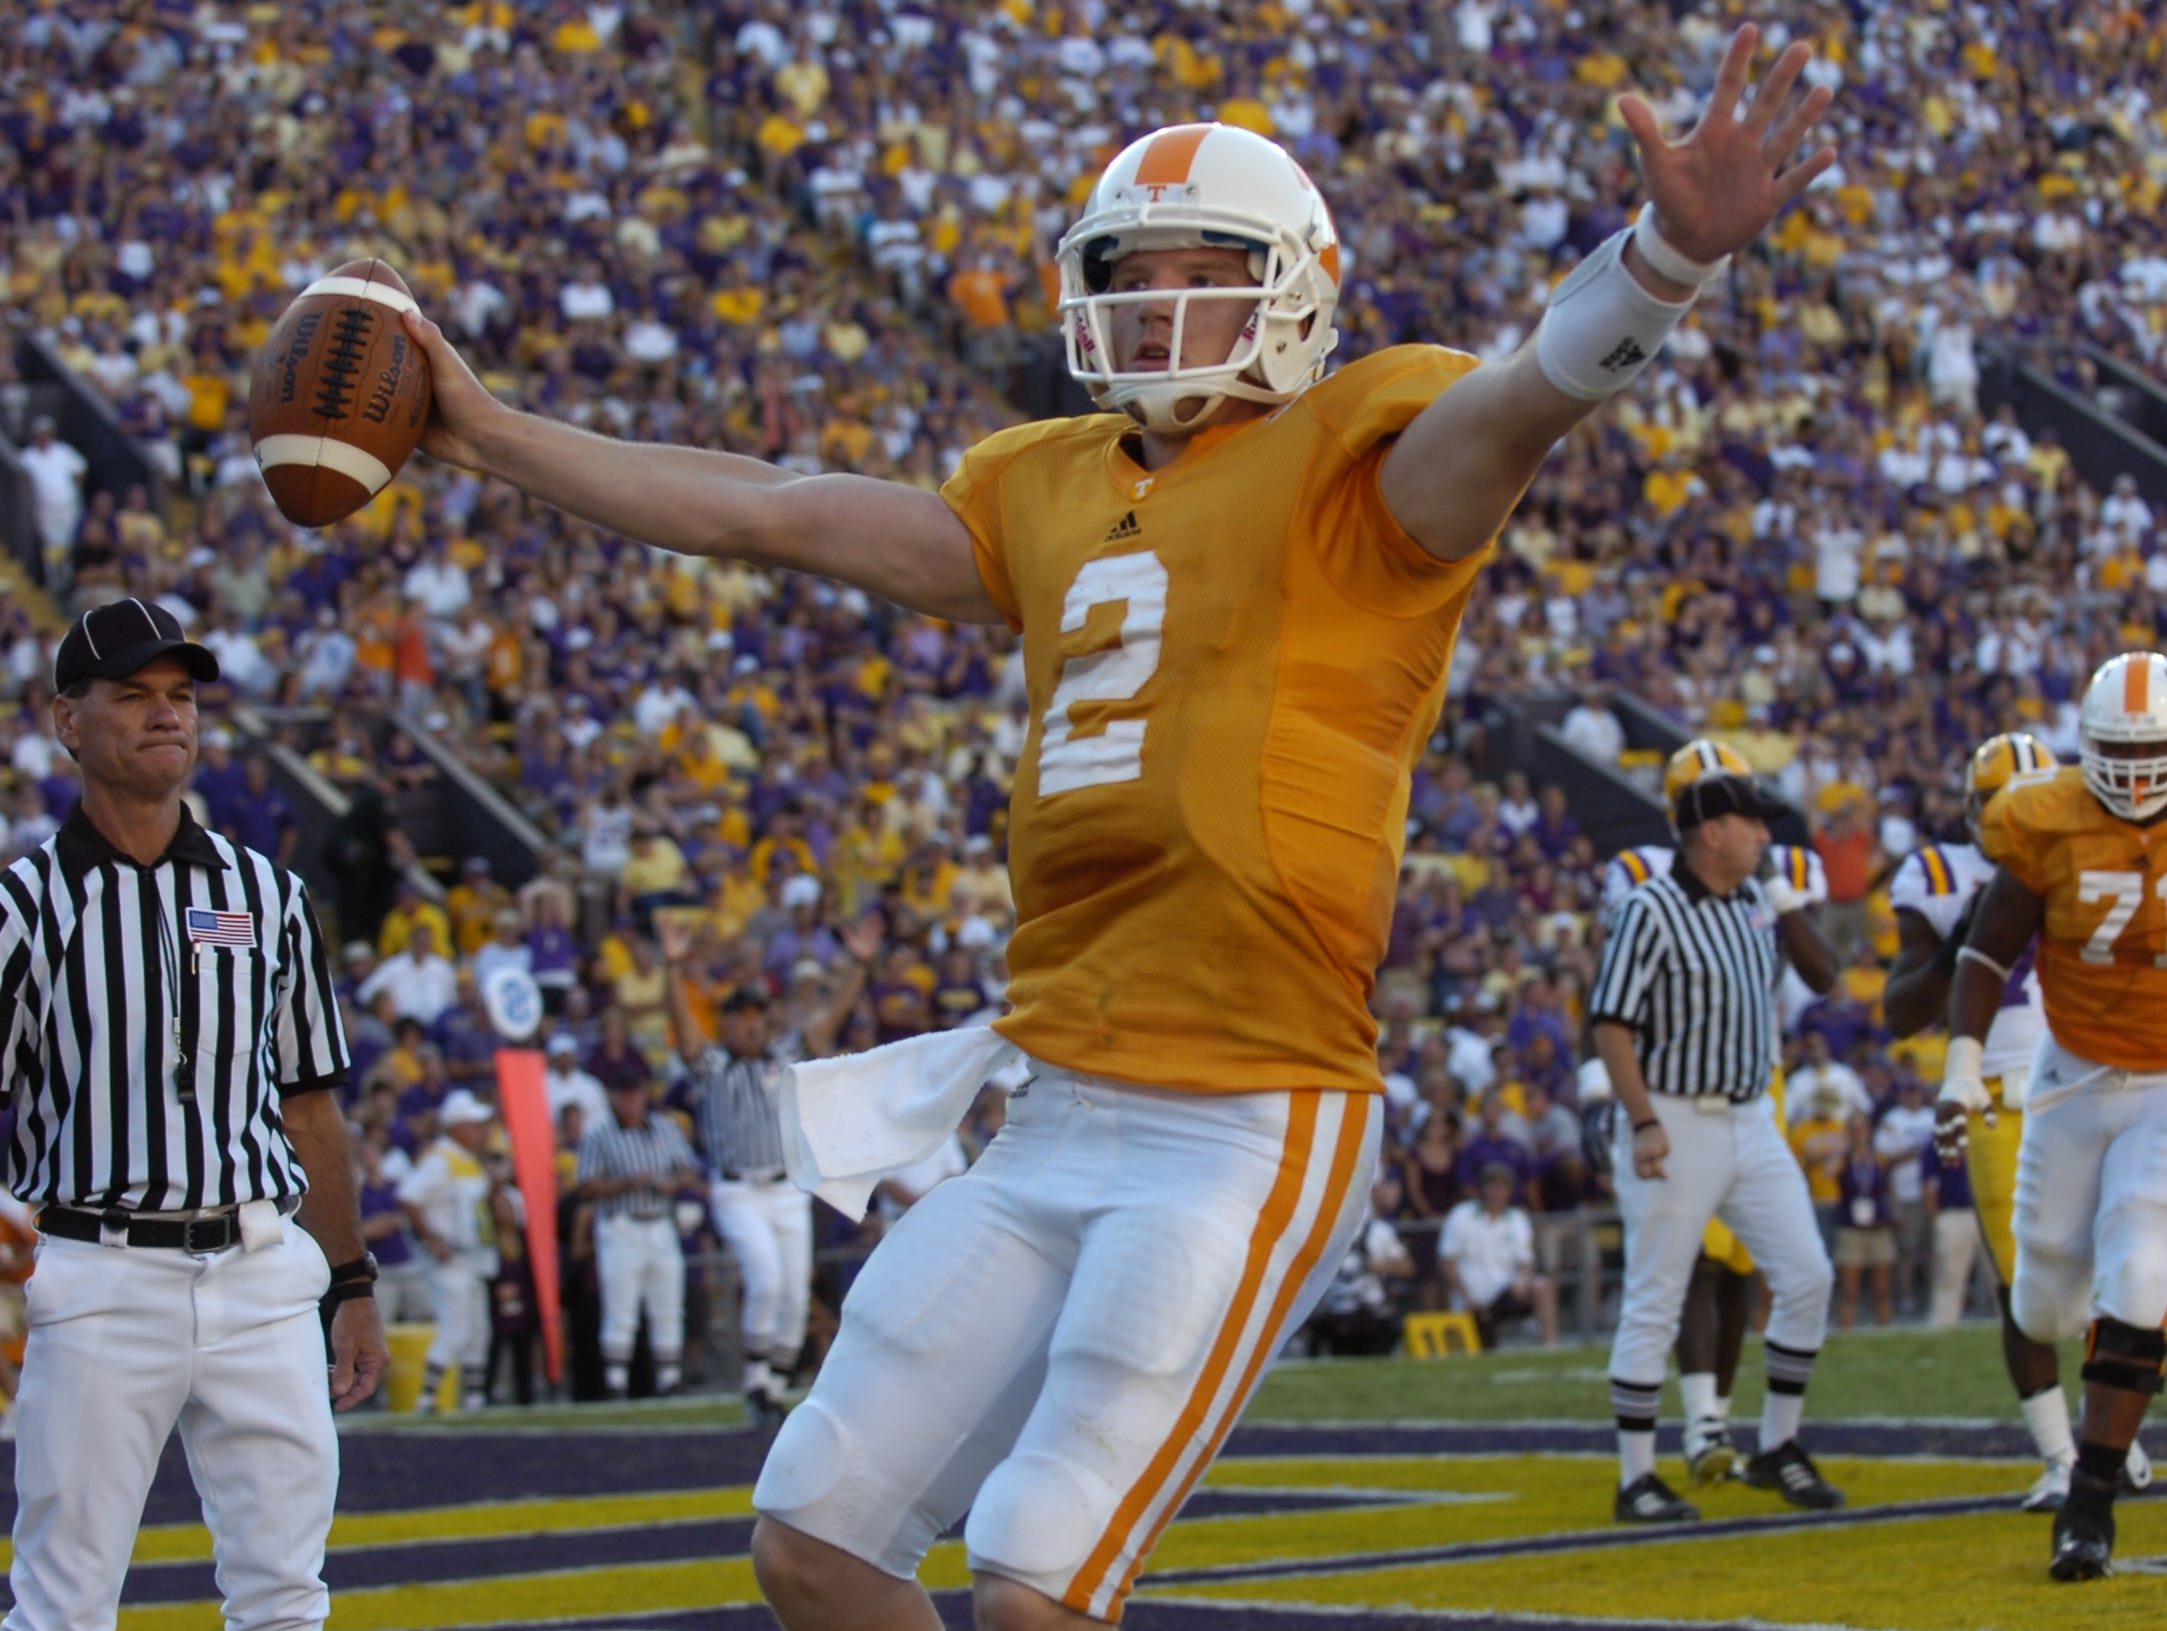 Tennesse quarterback Matt Simms scores a touchdown against LSU at Tiger Stadium in Baton Rouge, La. on Saturday, Oct. 2, 2010. UT lost the game 16-14 after a defensive penalty in the final play of the game.